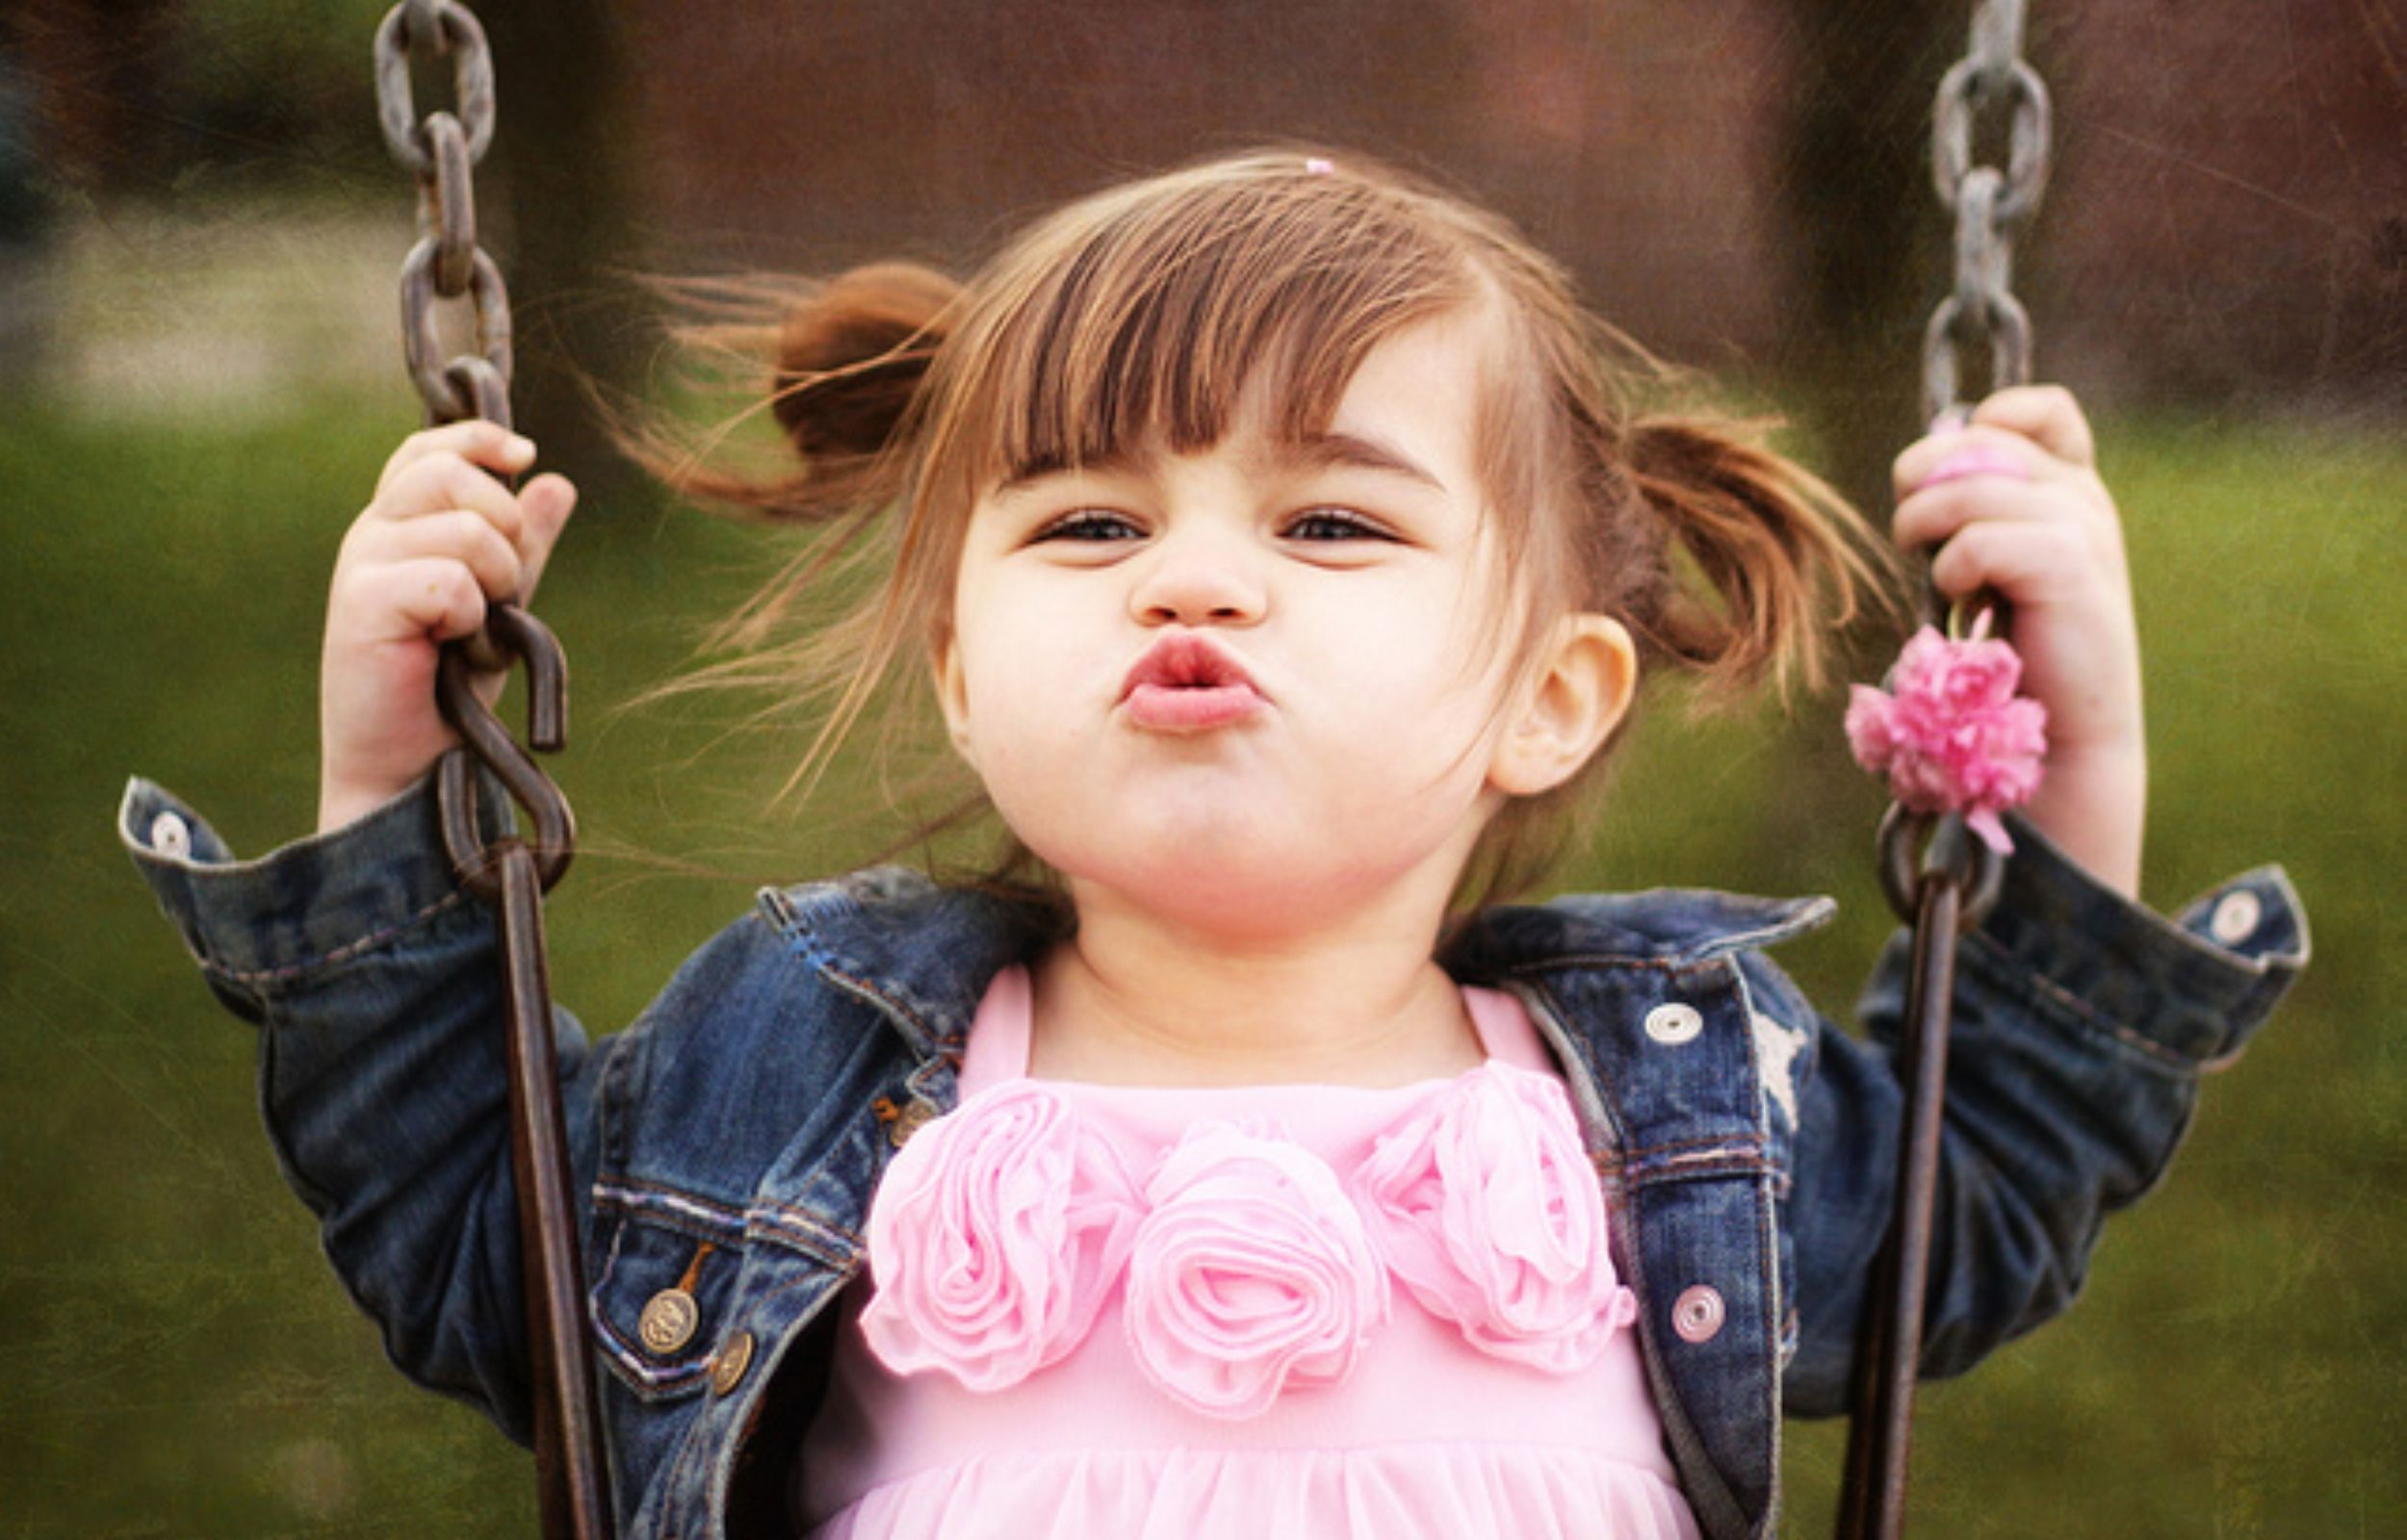 Baby Girl Cute Smiling Flying Kiss Baby Girl Pictures Cute Baby Girl Wallpaper Baby Girl Wallpaper